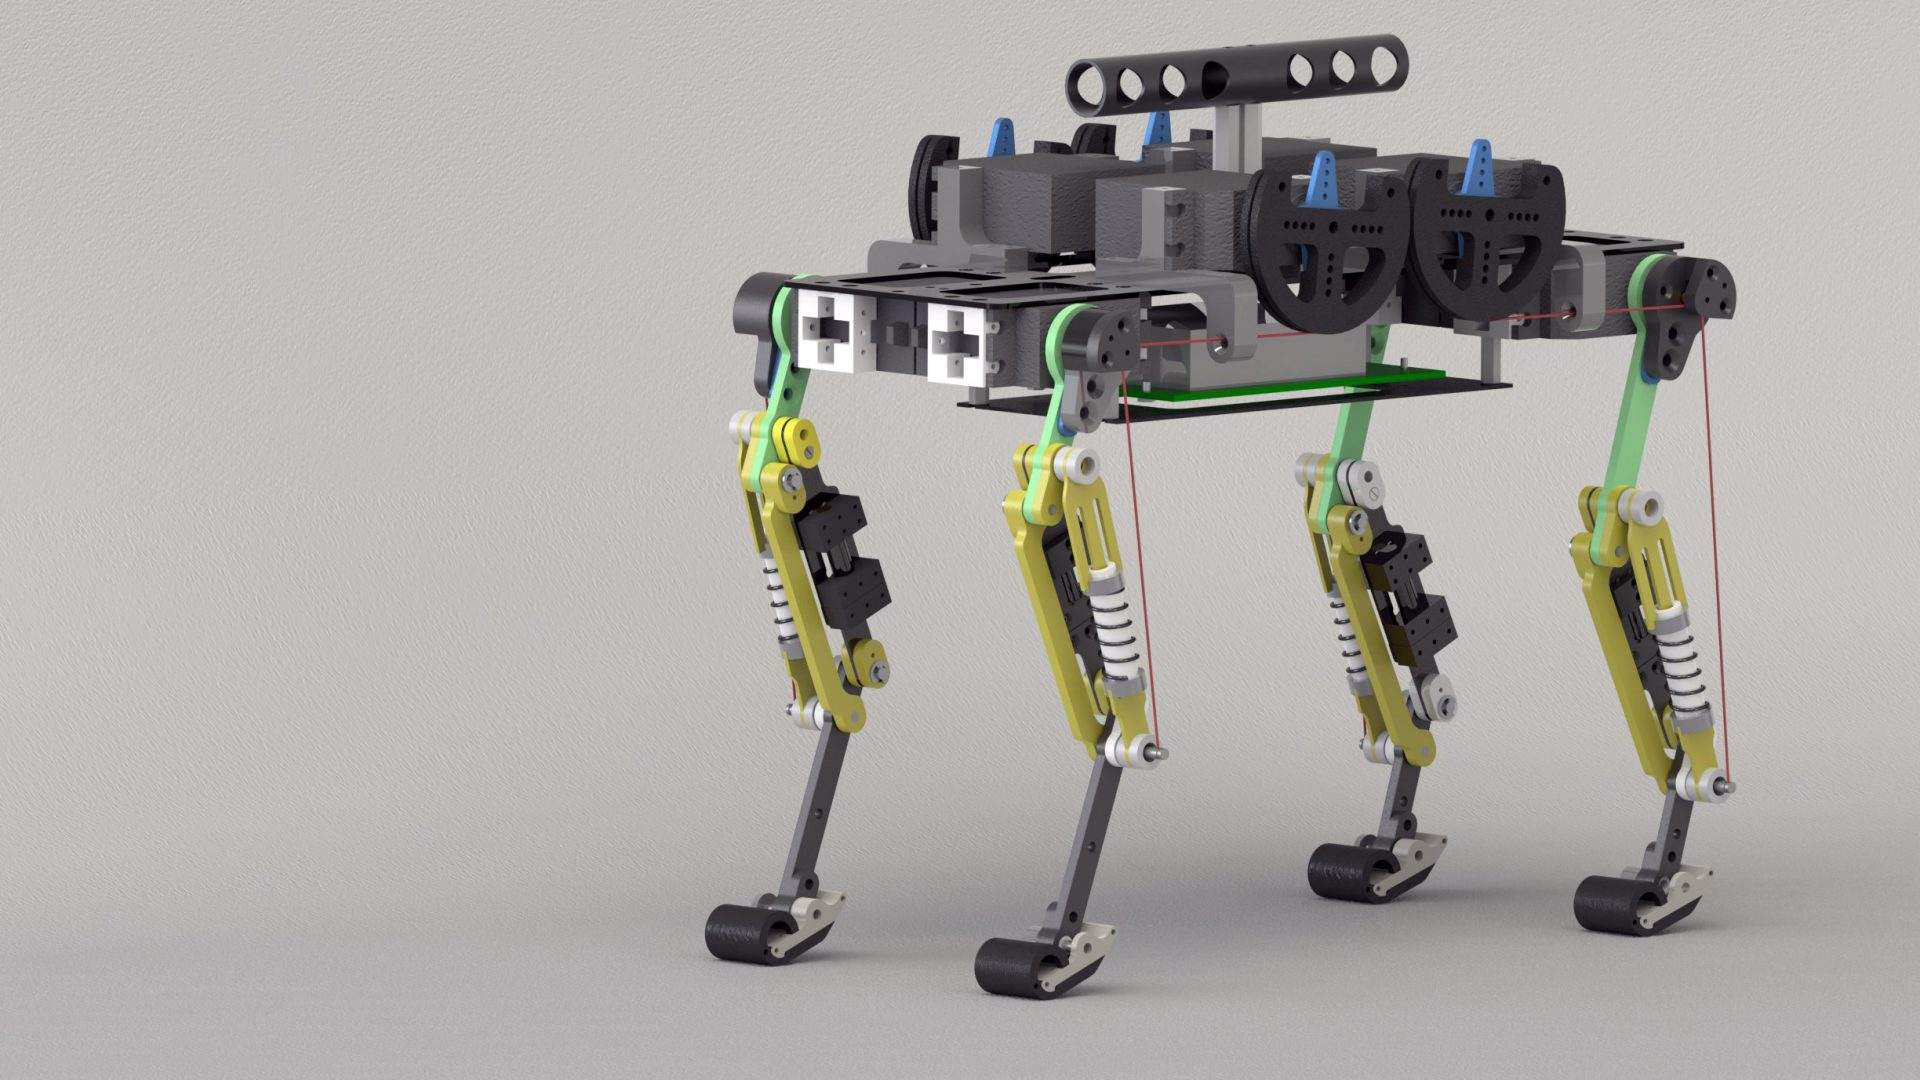 Picture of Cheetah-cub, a compliant quadruped robot